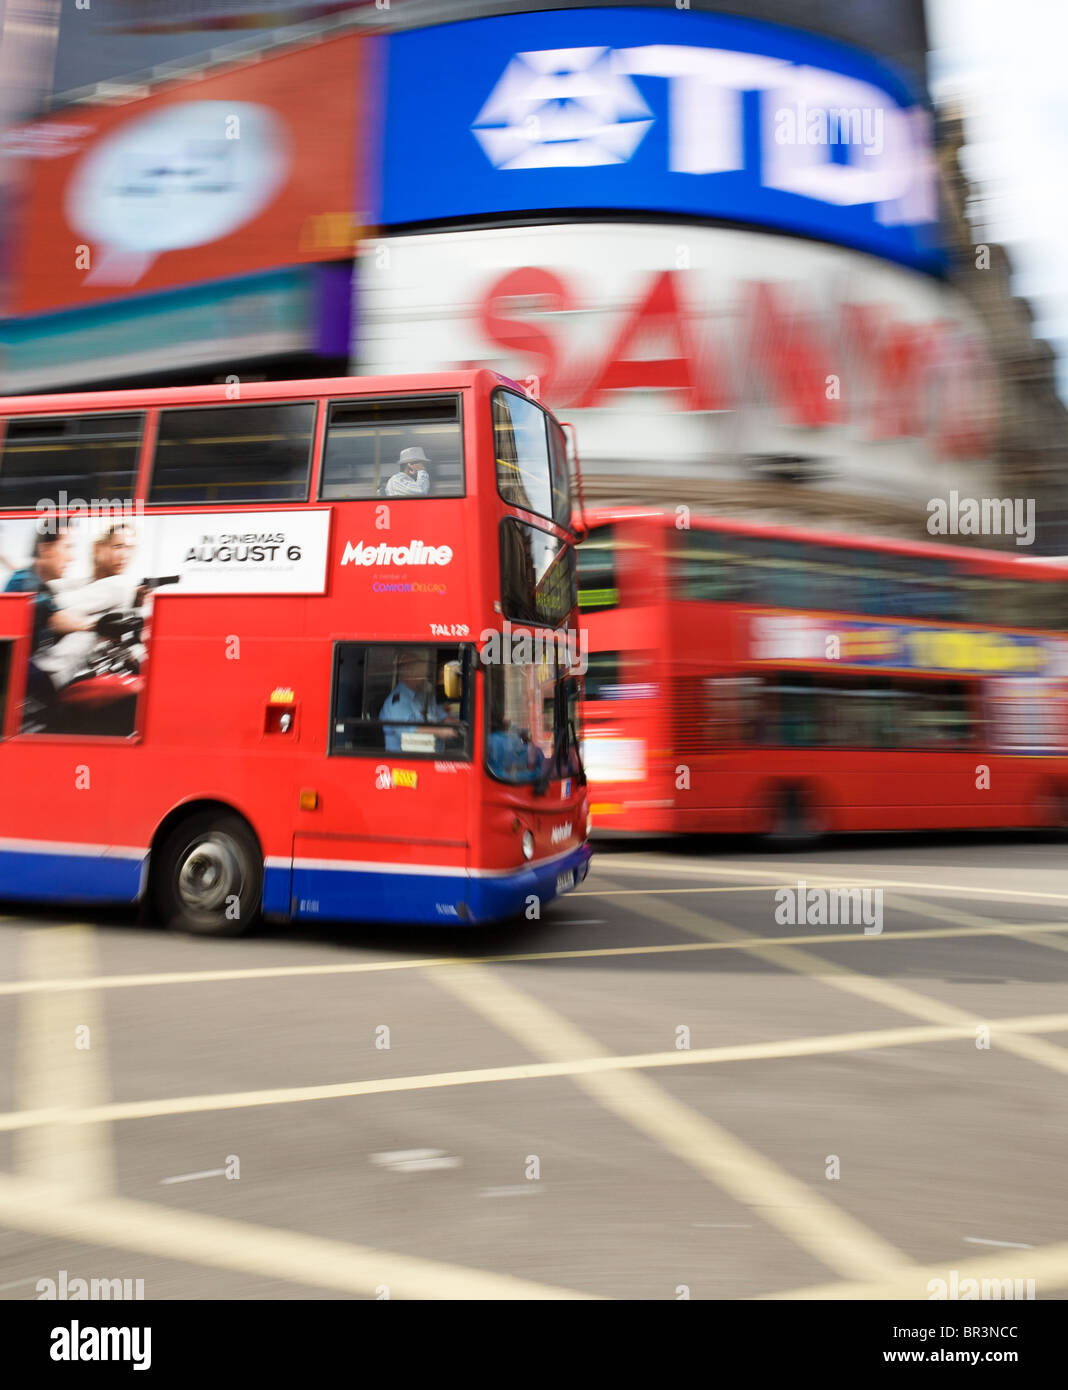 Buses in Piccadilly Circus, London - Stock Image